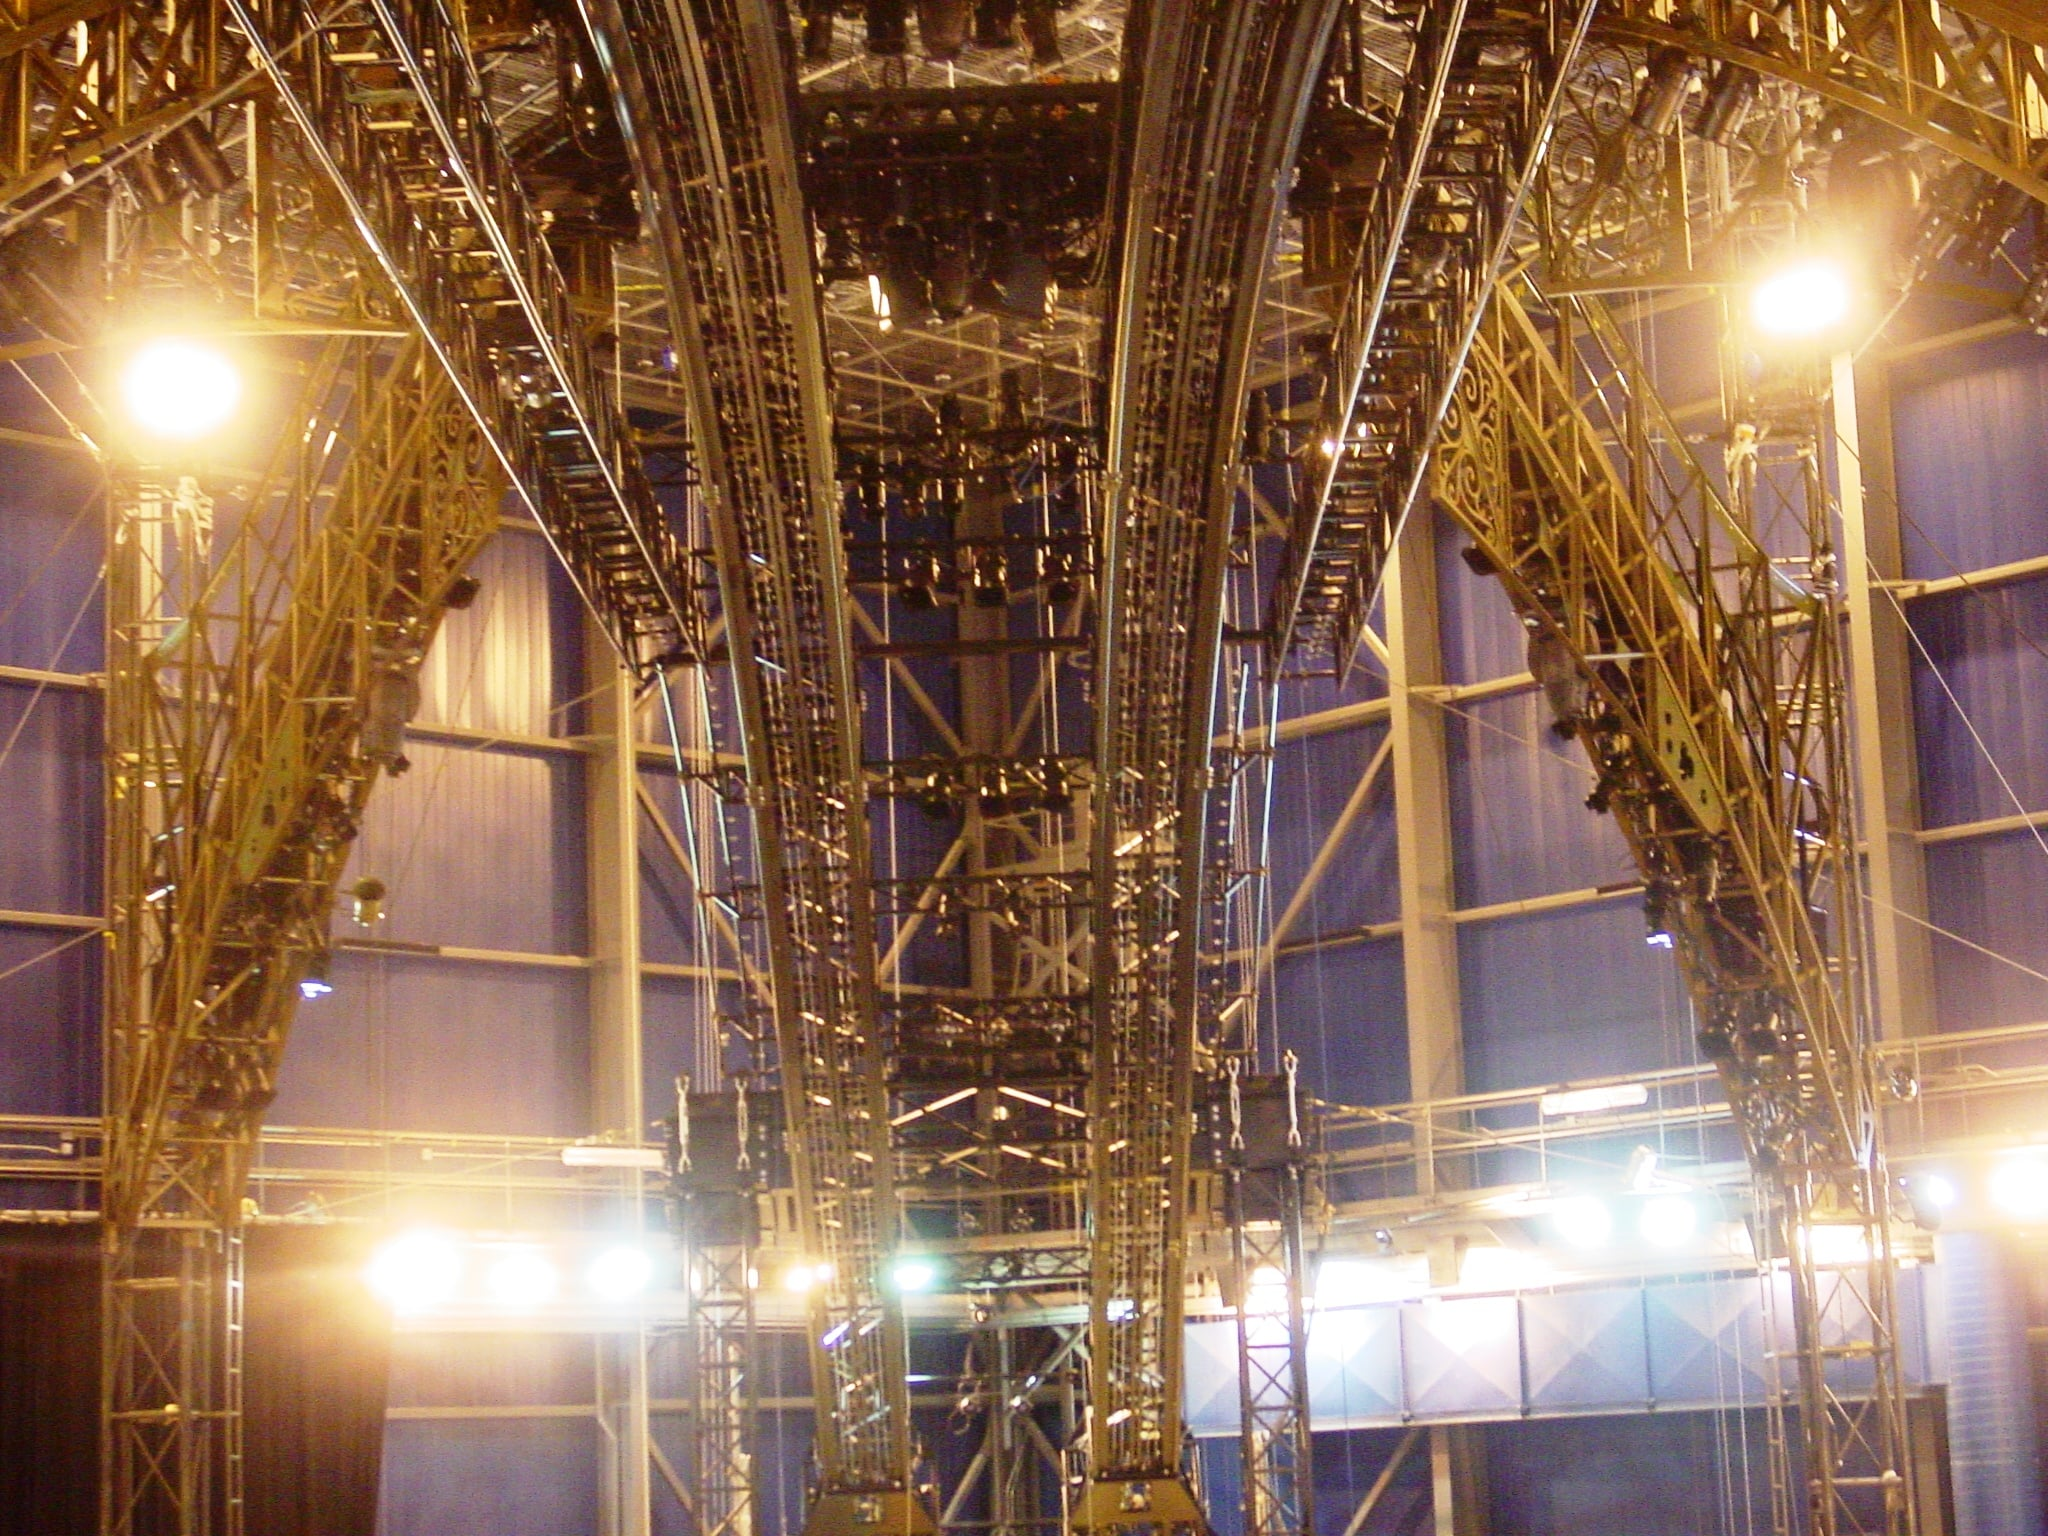 La patience - Overstage rigging structure